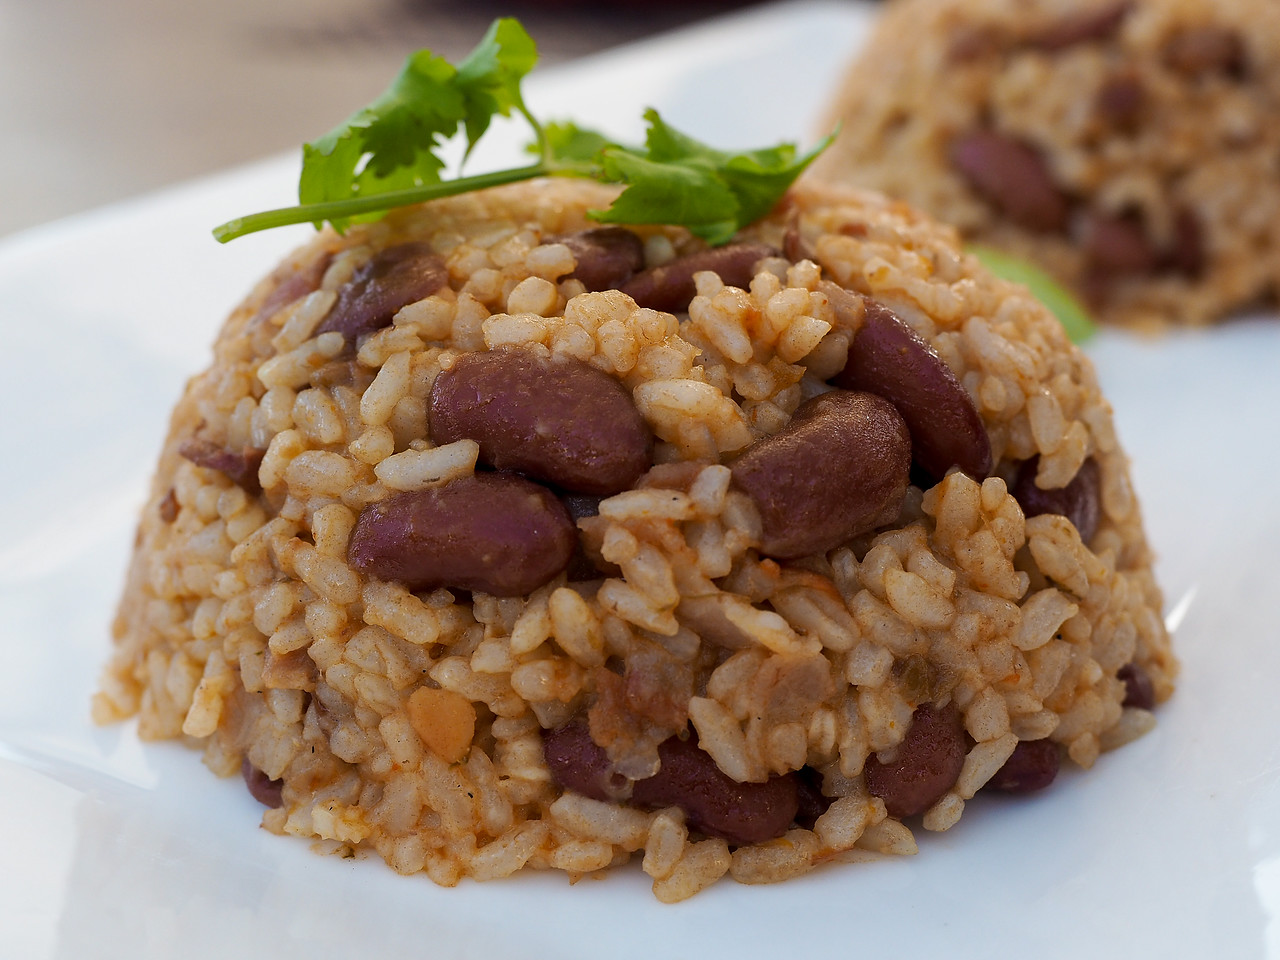 Rice and beans in Puerto Rico